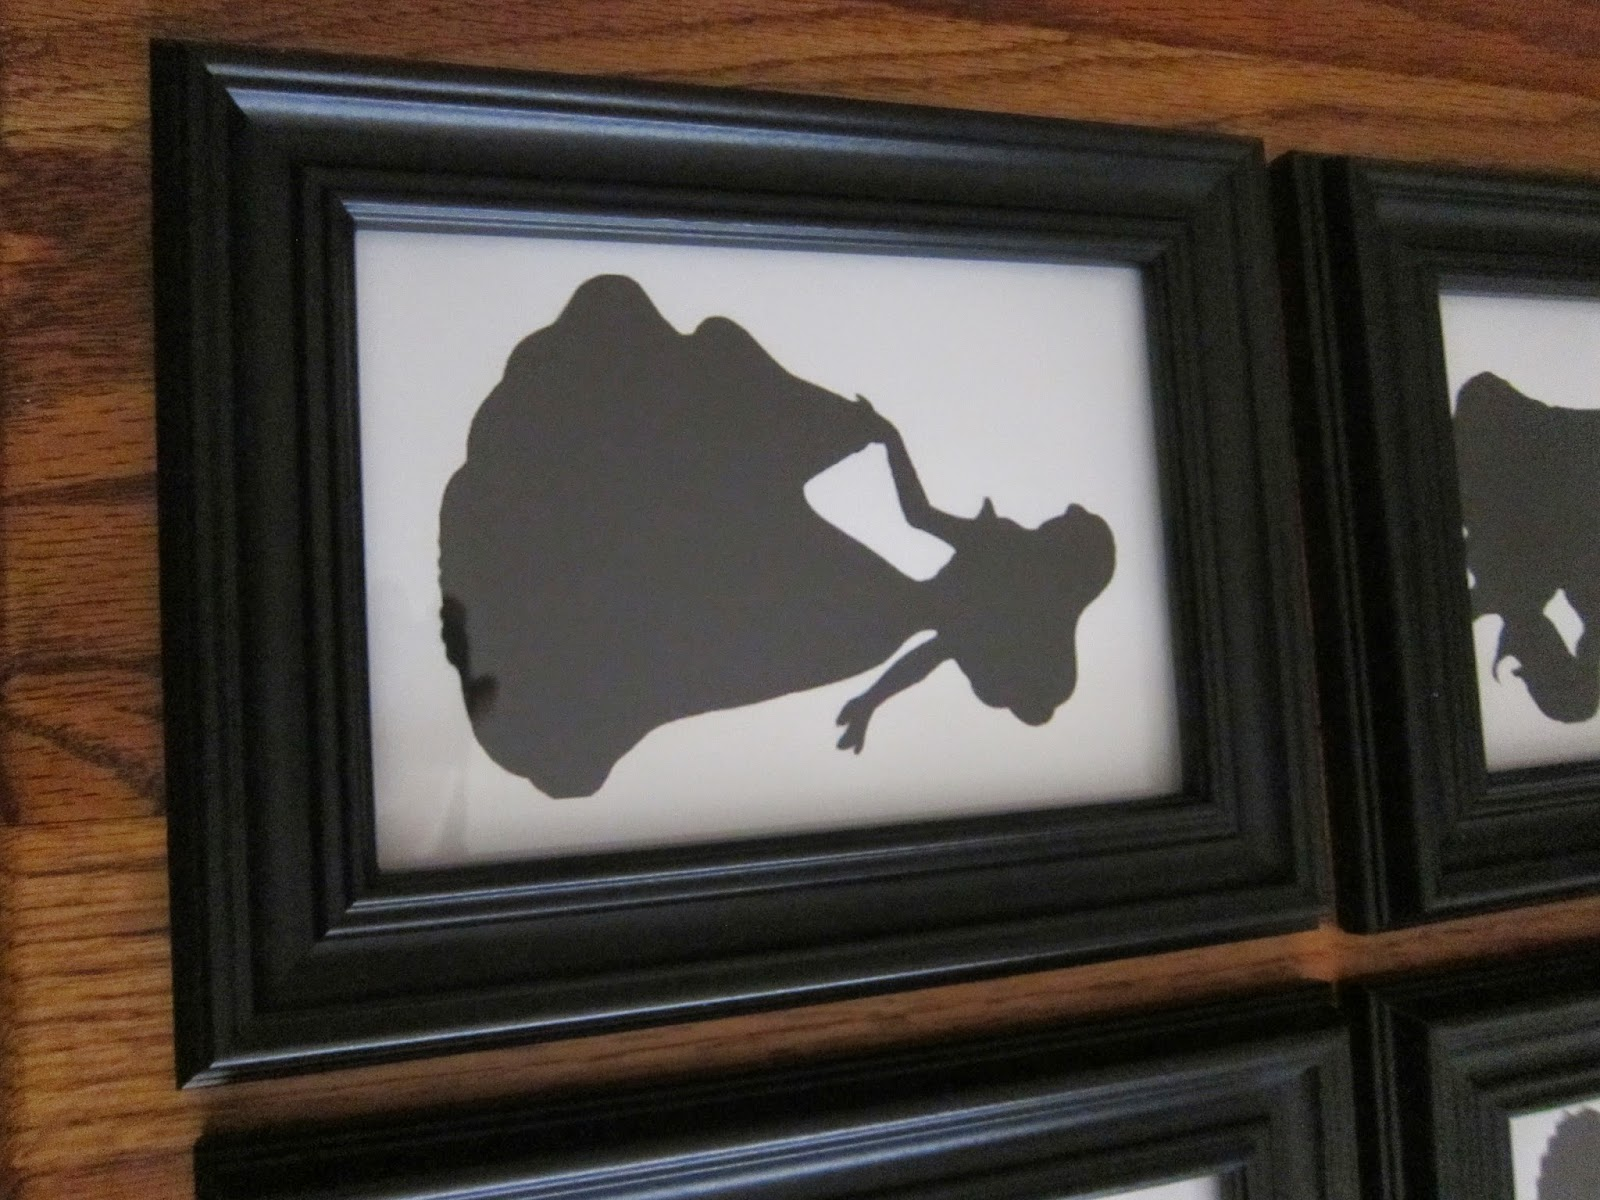 A writers wife brooklyns nursery project 1 princess silhouettes we bought these 5x7 frames at walmart for 4 each here is the final product i think they turned out great jeuxipadfo Gallery